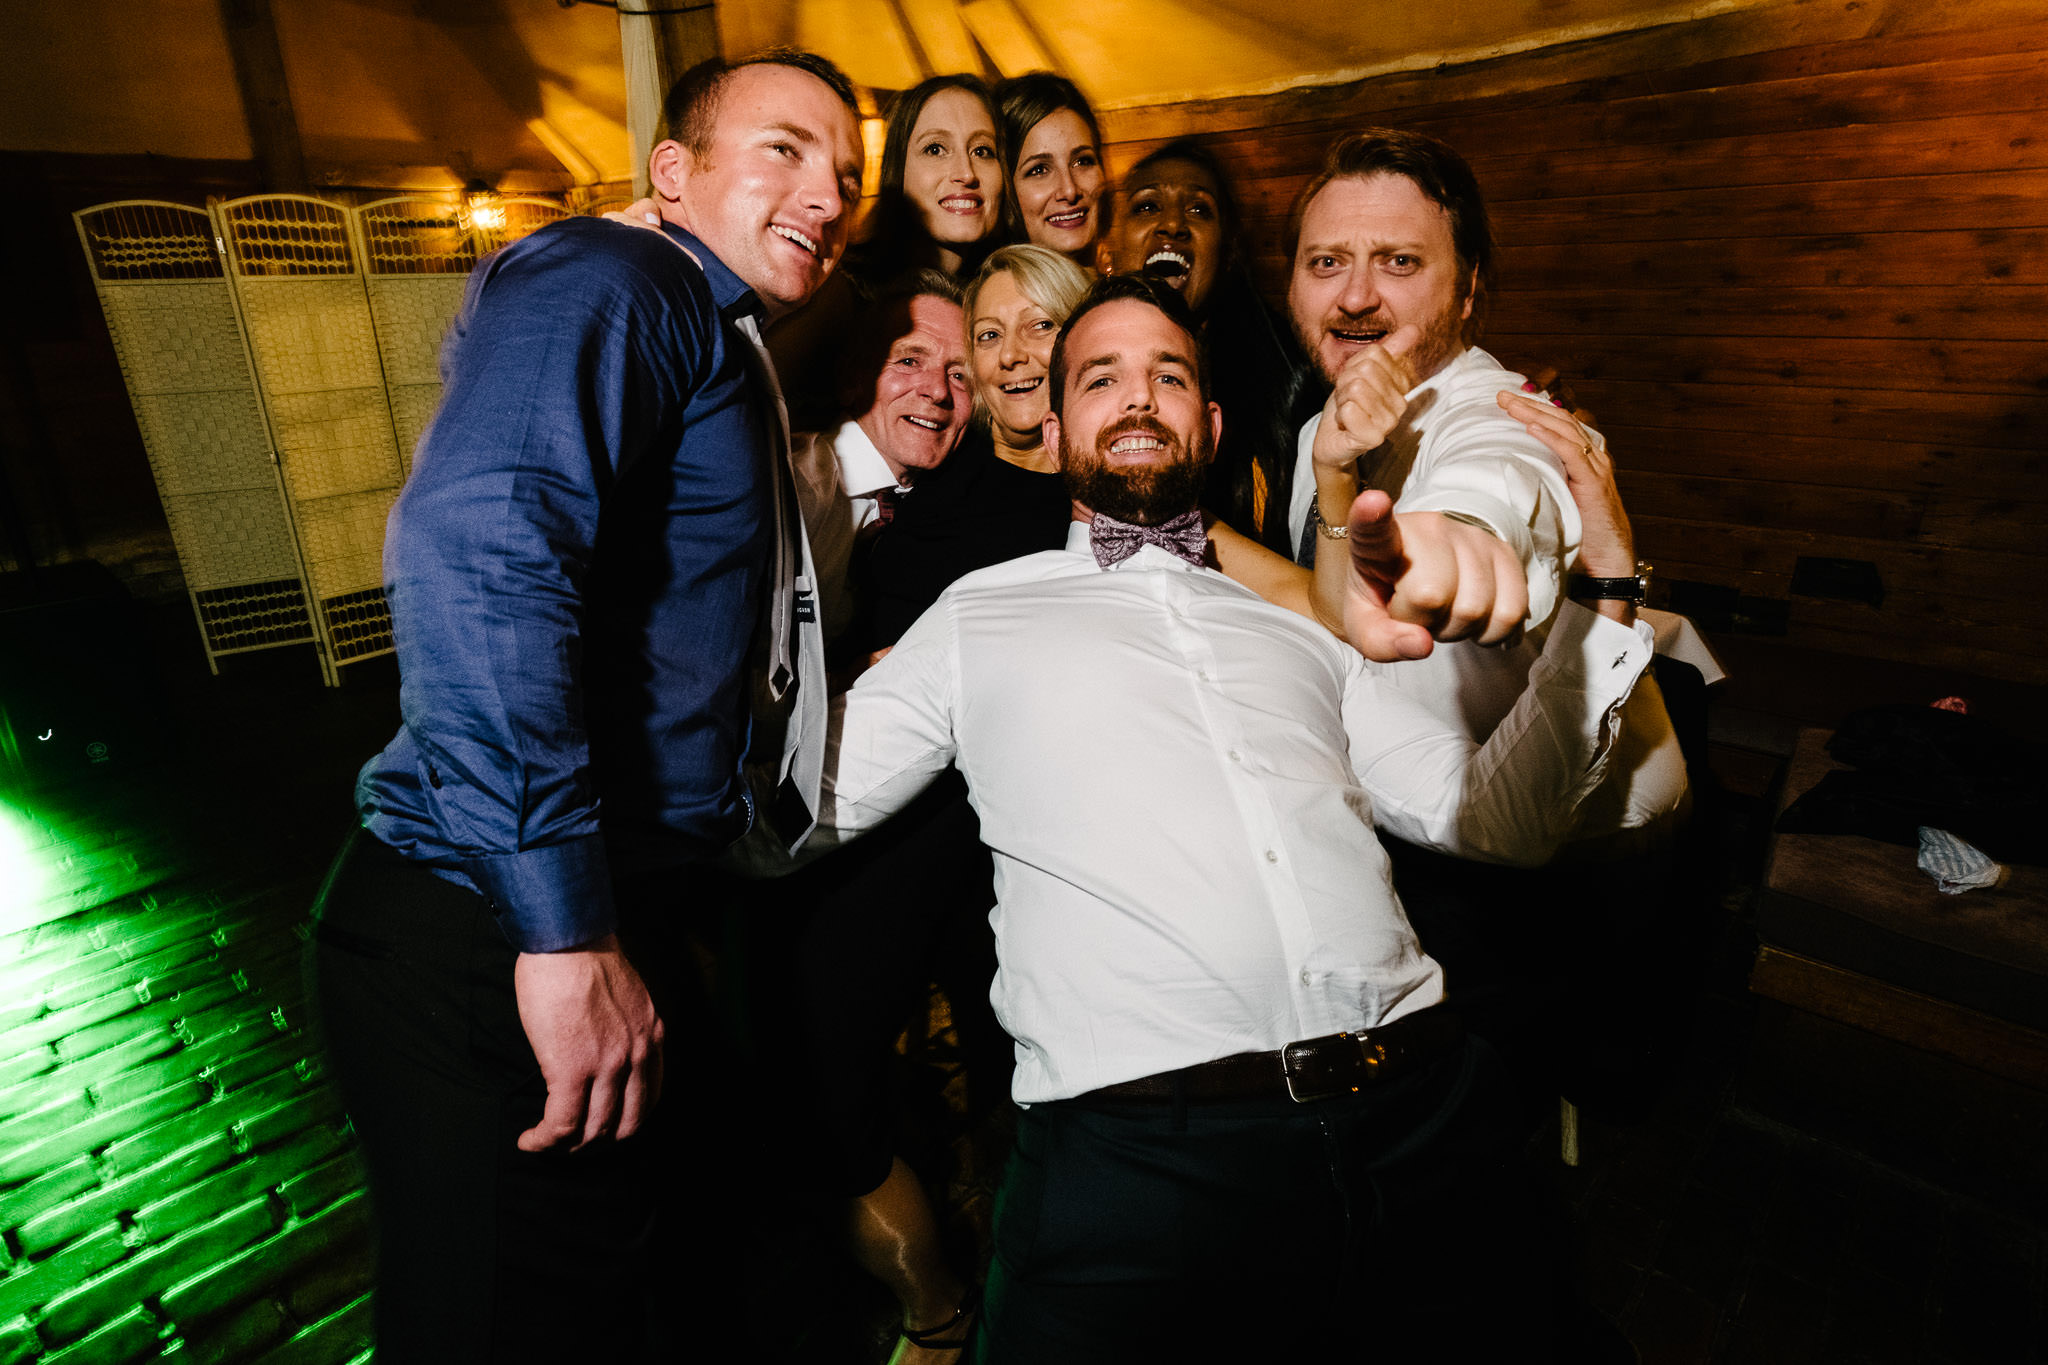 Wedding guests partying at Lains Barn Wedding Venue